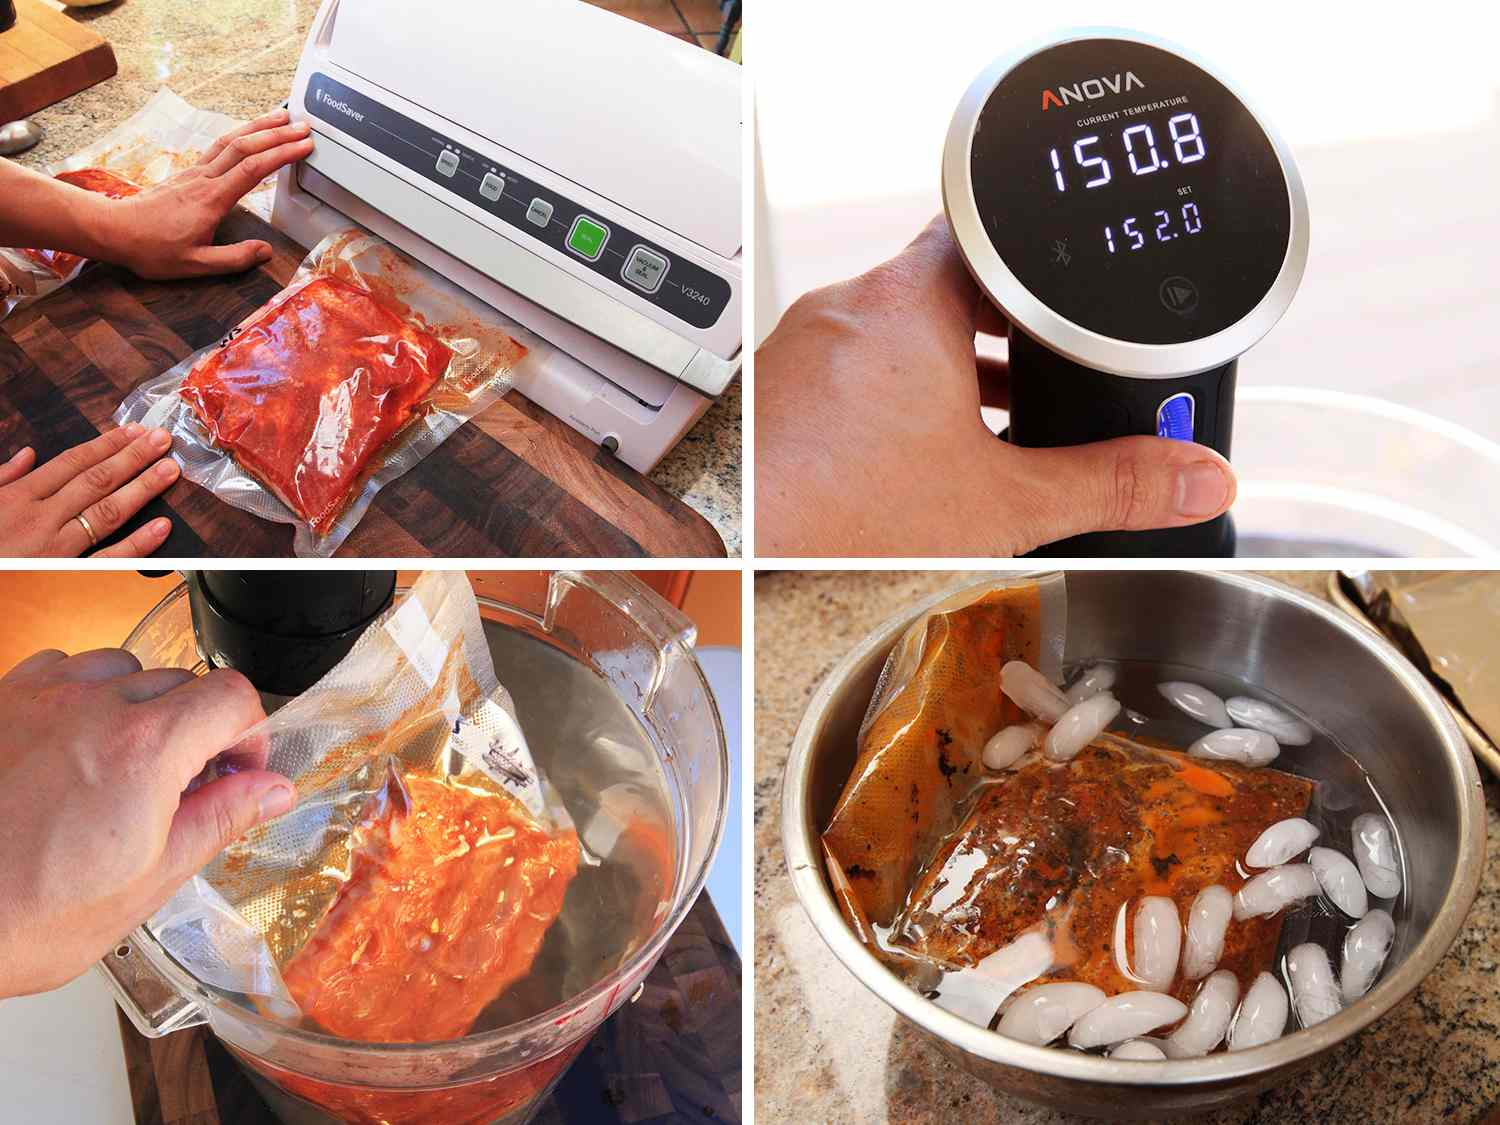 Collage of making sous vide pork ribs: vacuum-sealing pork ribs, setting immersion circulator to desired temperature, lowering bagged meat into water bath, adding bagged meat to ice bath